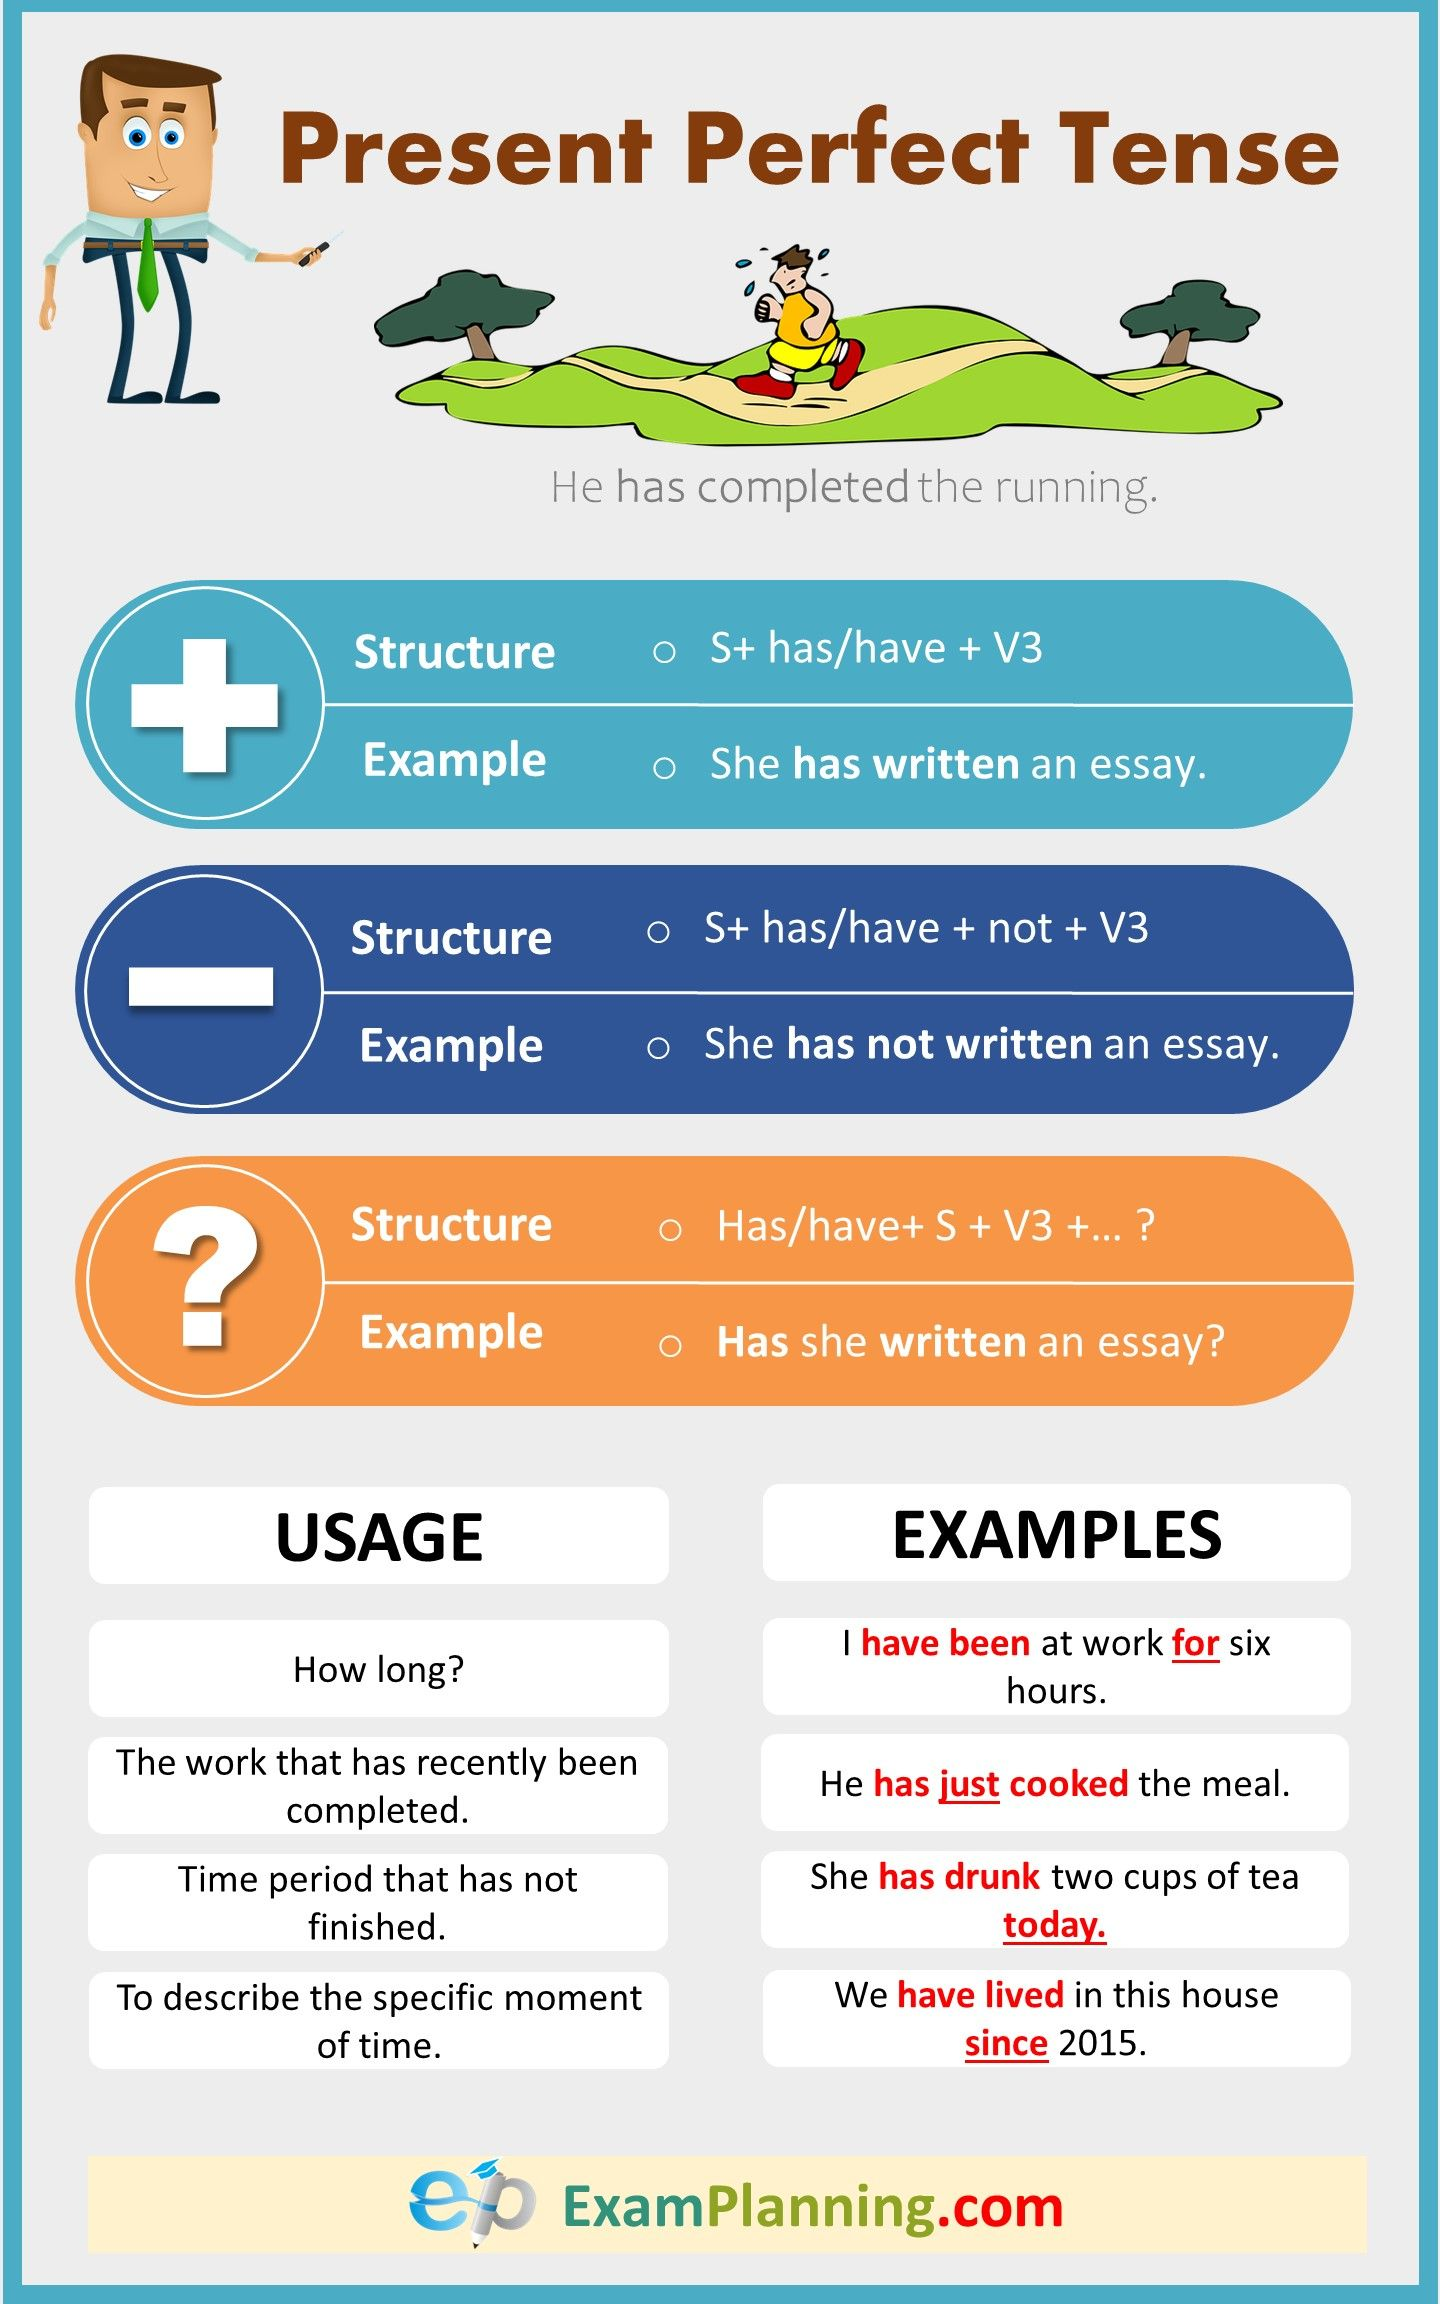 Present Perfect Tense Examples Exercise And Usage